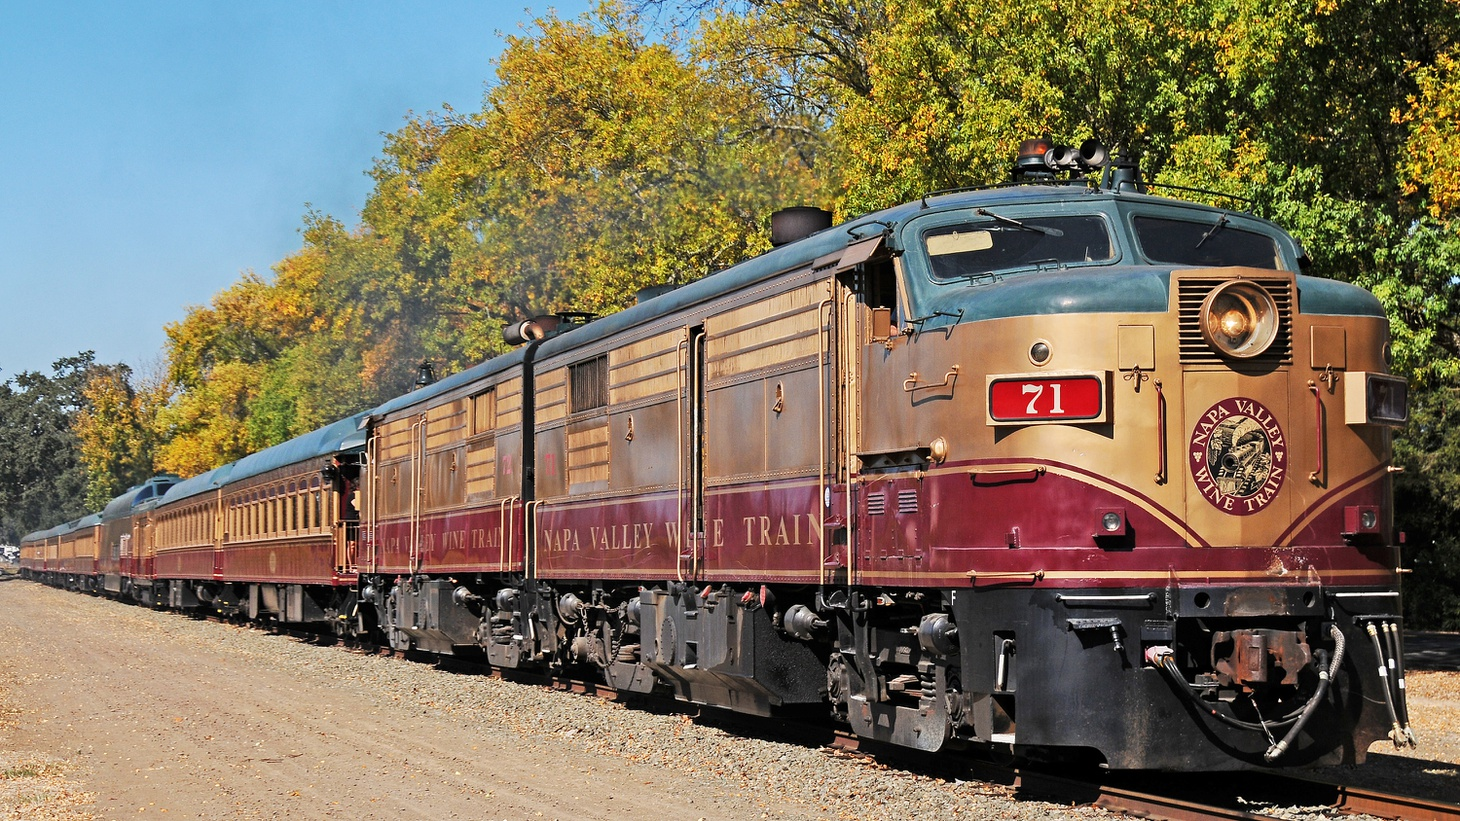 California's Napa Valley is now being called one of those places where no black people are allowed to have fun. The Napa Valley Wine Train takes passengers 18 miles through California's wine Country, from Napa to St. Helena -- with wine tasting provided along the way.